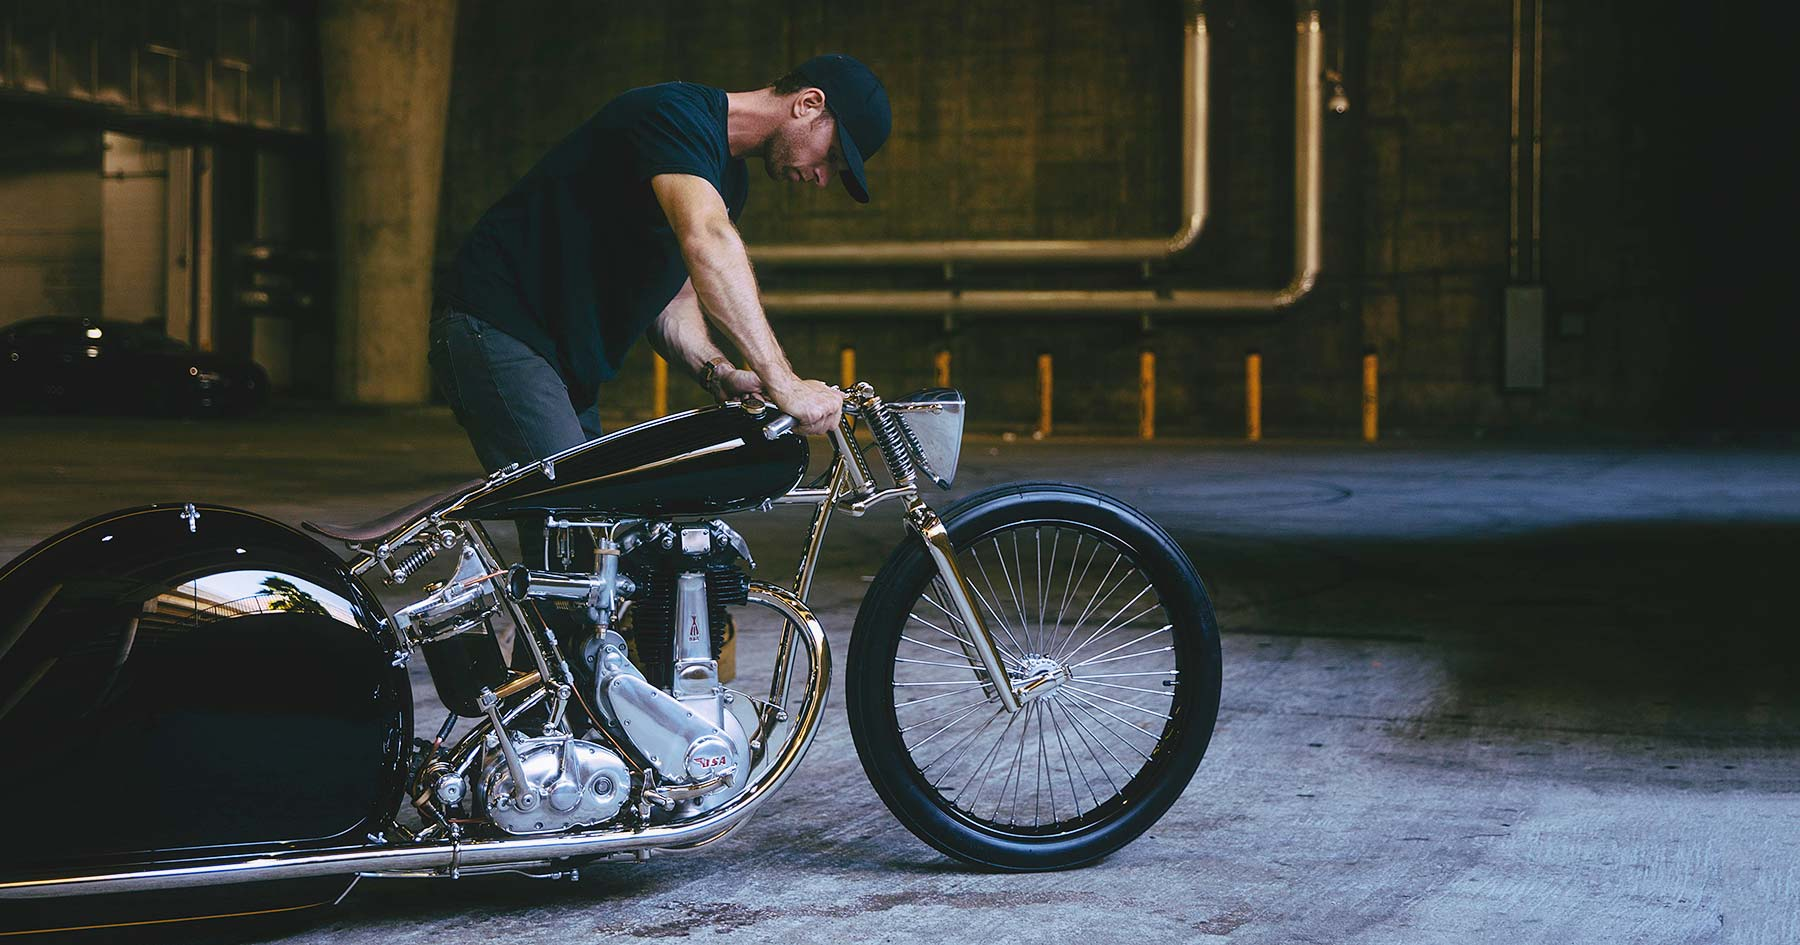 Streamline Moderne: Max Hazan's astonishing BSA 500